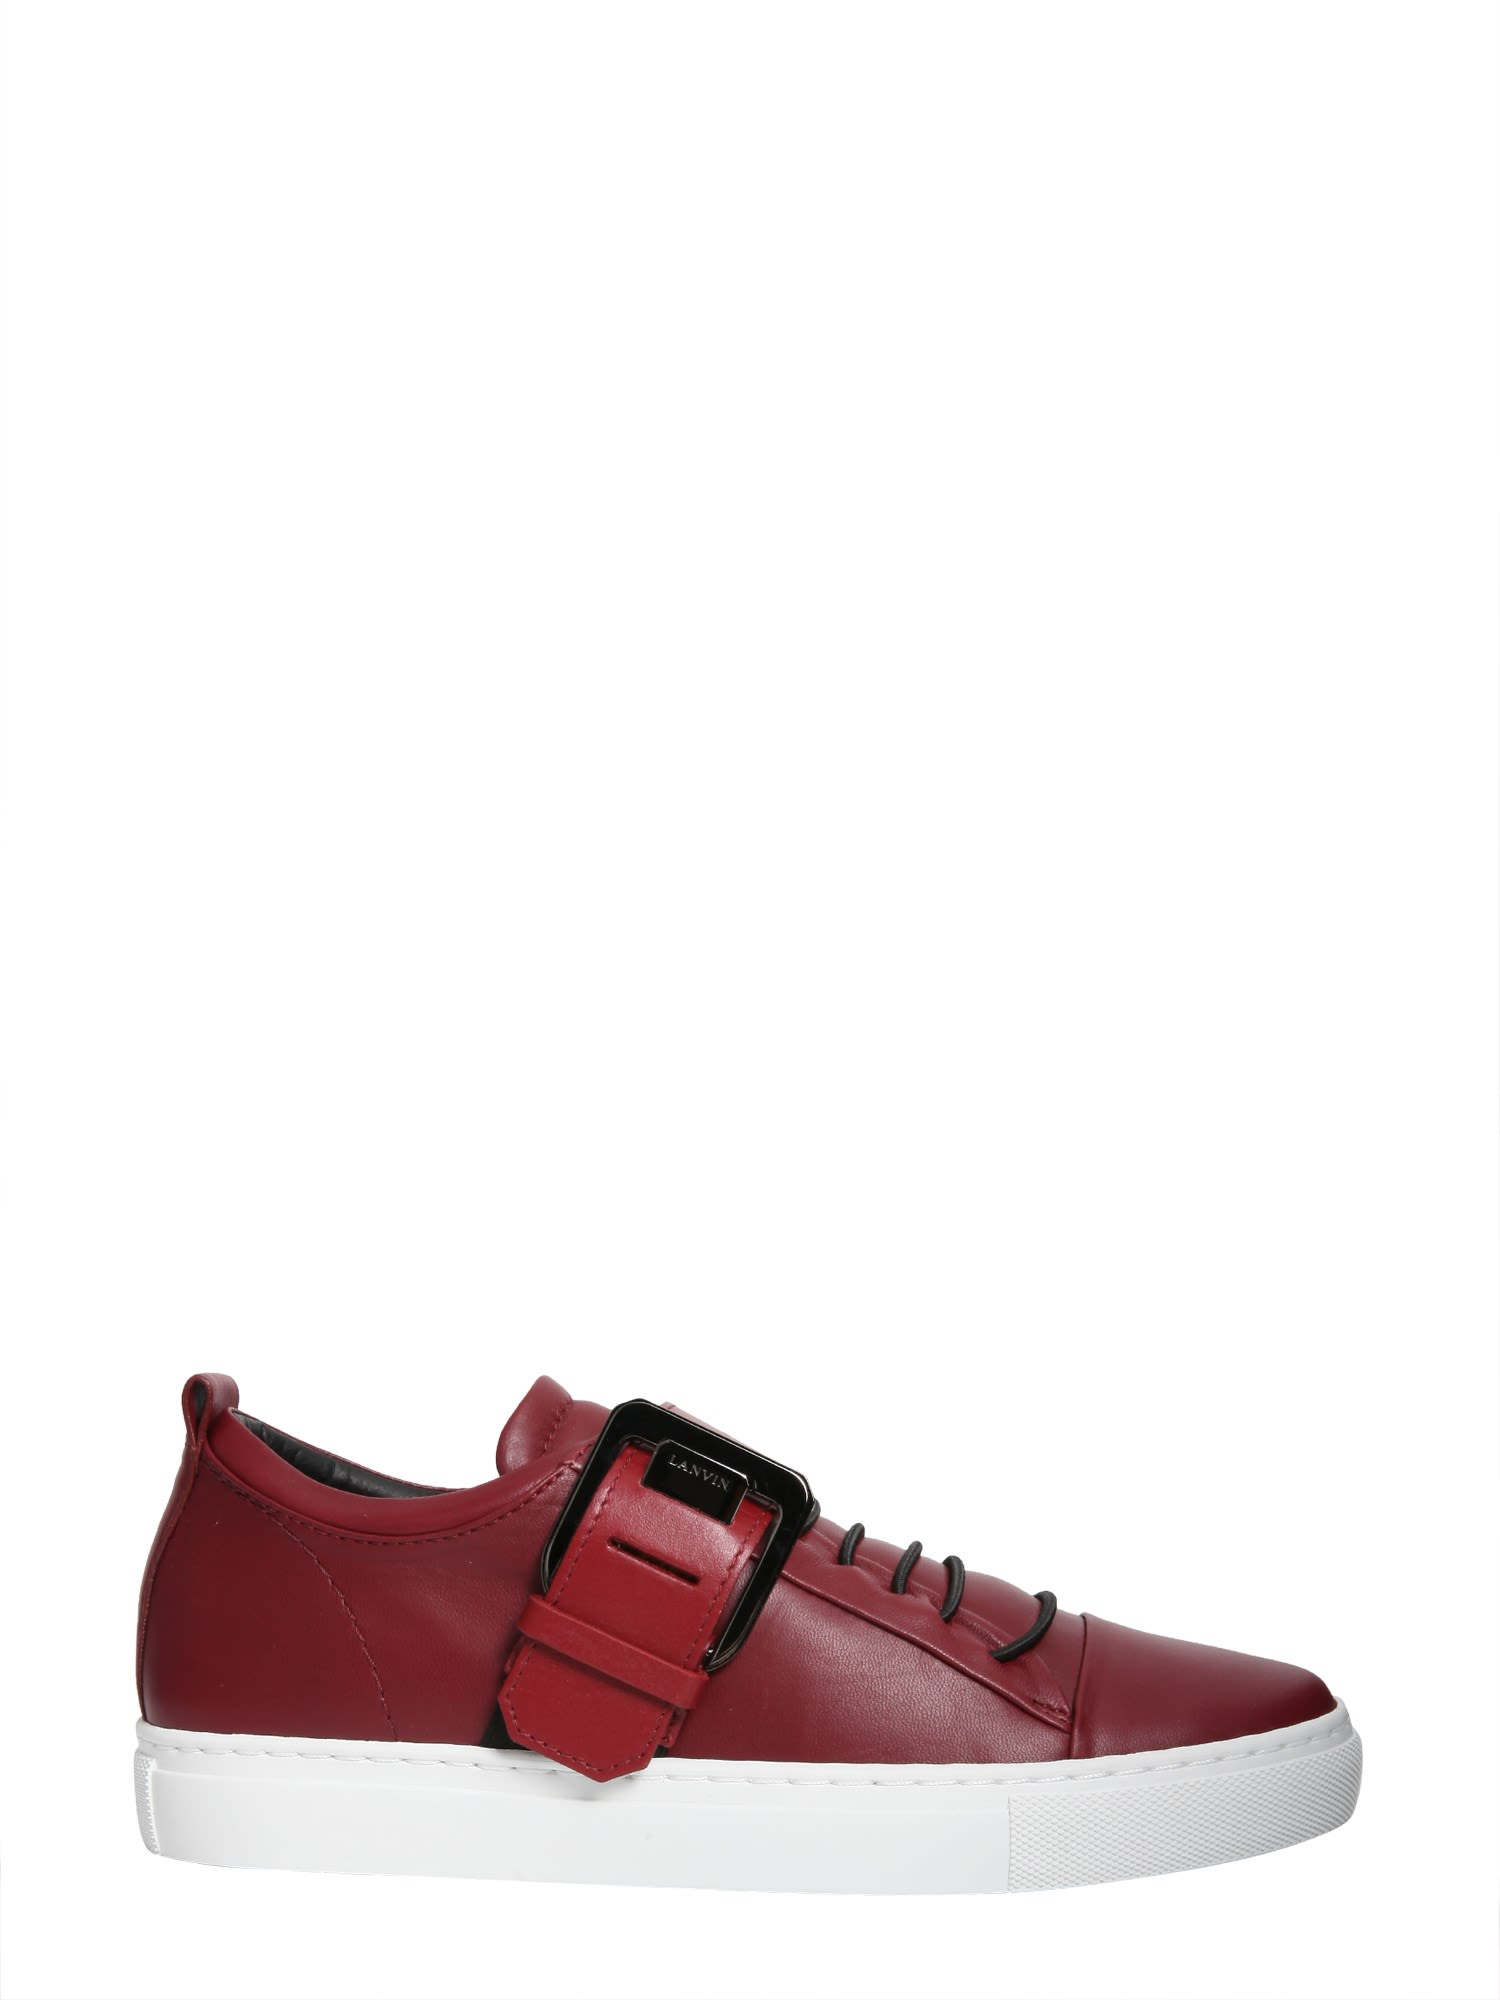 Lanvin Low-top Square Buckle Sneakers